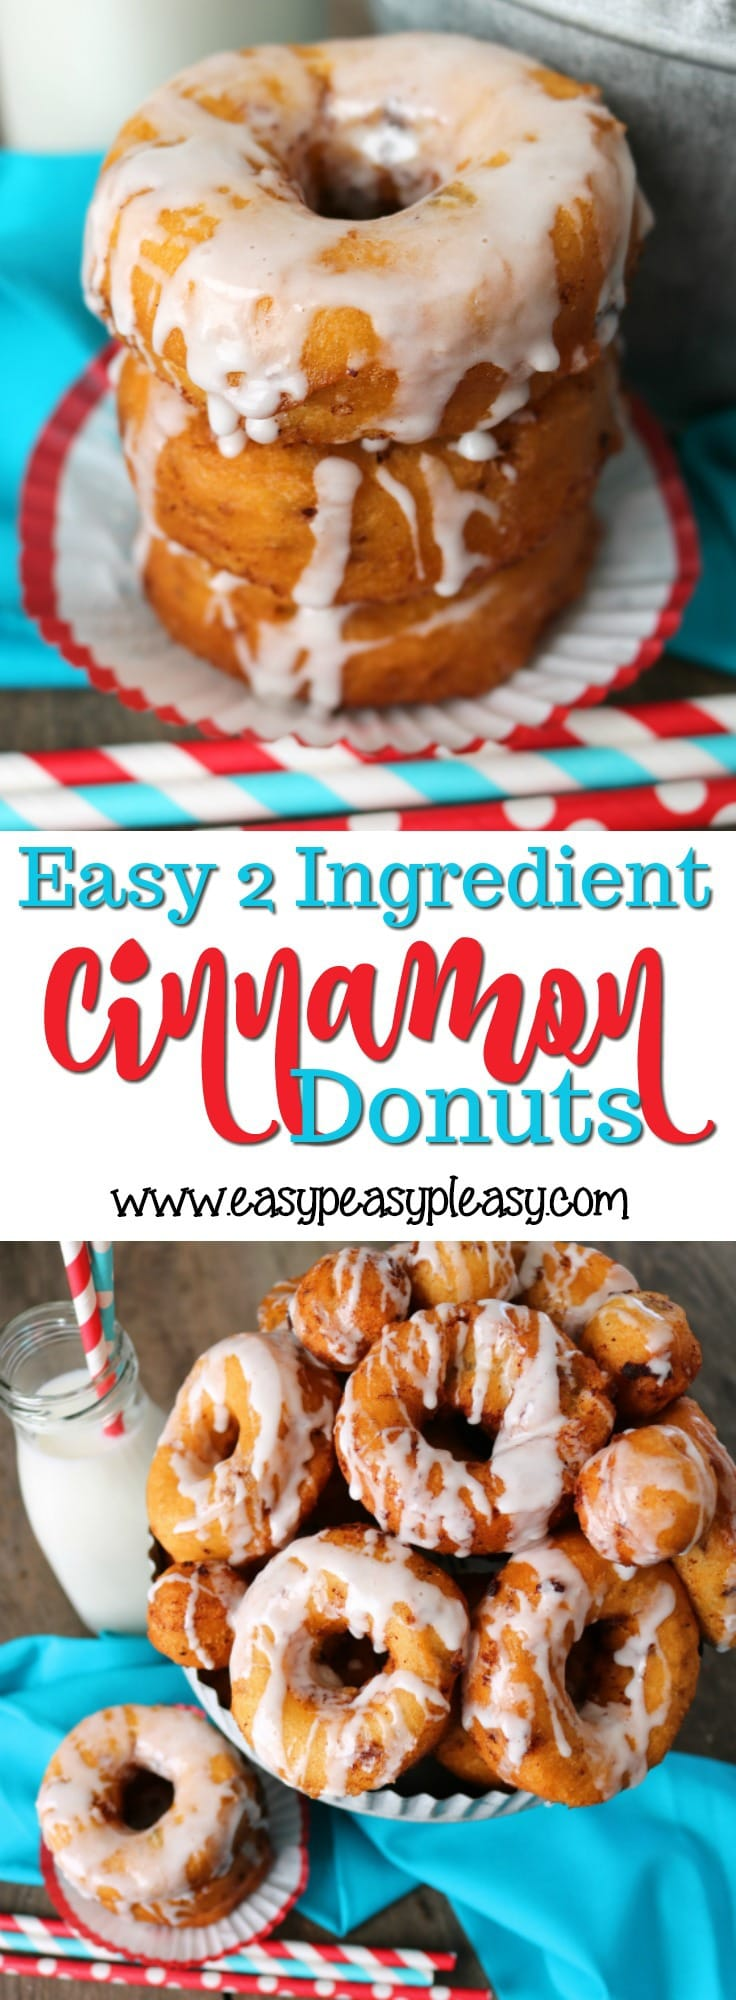 Donuts have never been easier to make than these 2 ingredient cinnamon donuts. This recipe will be a must have on your breakfast menu.